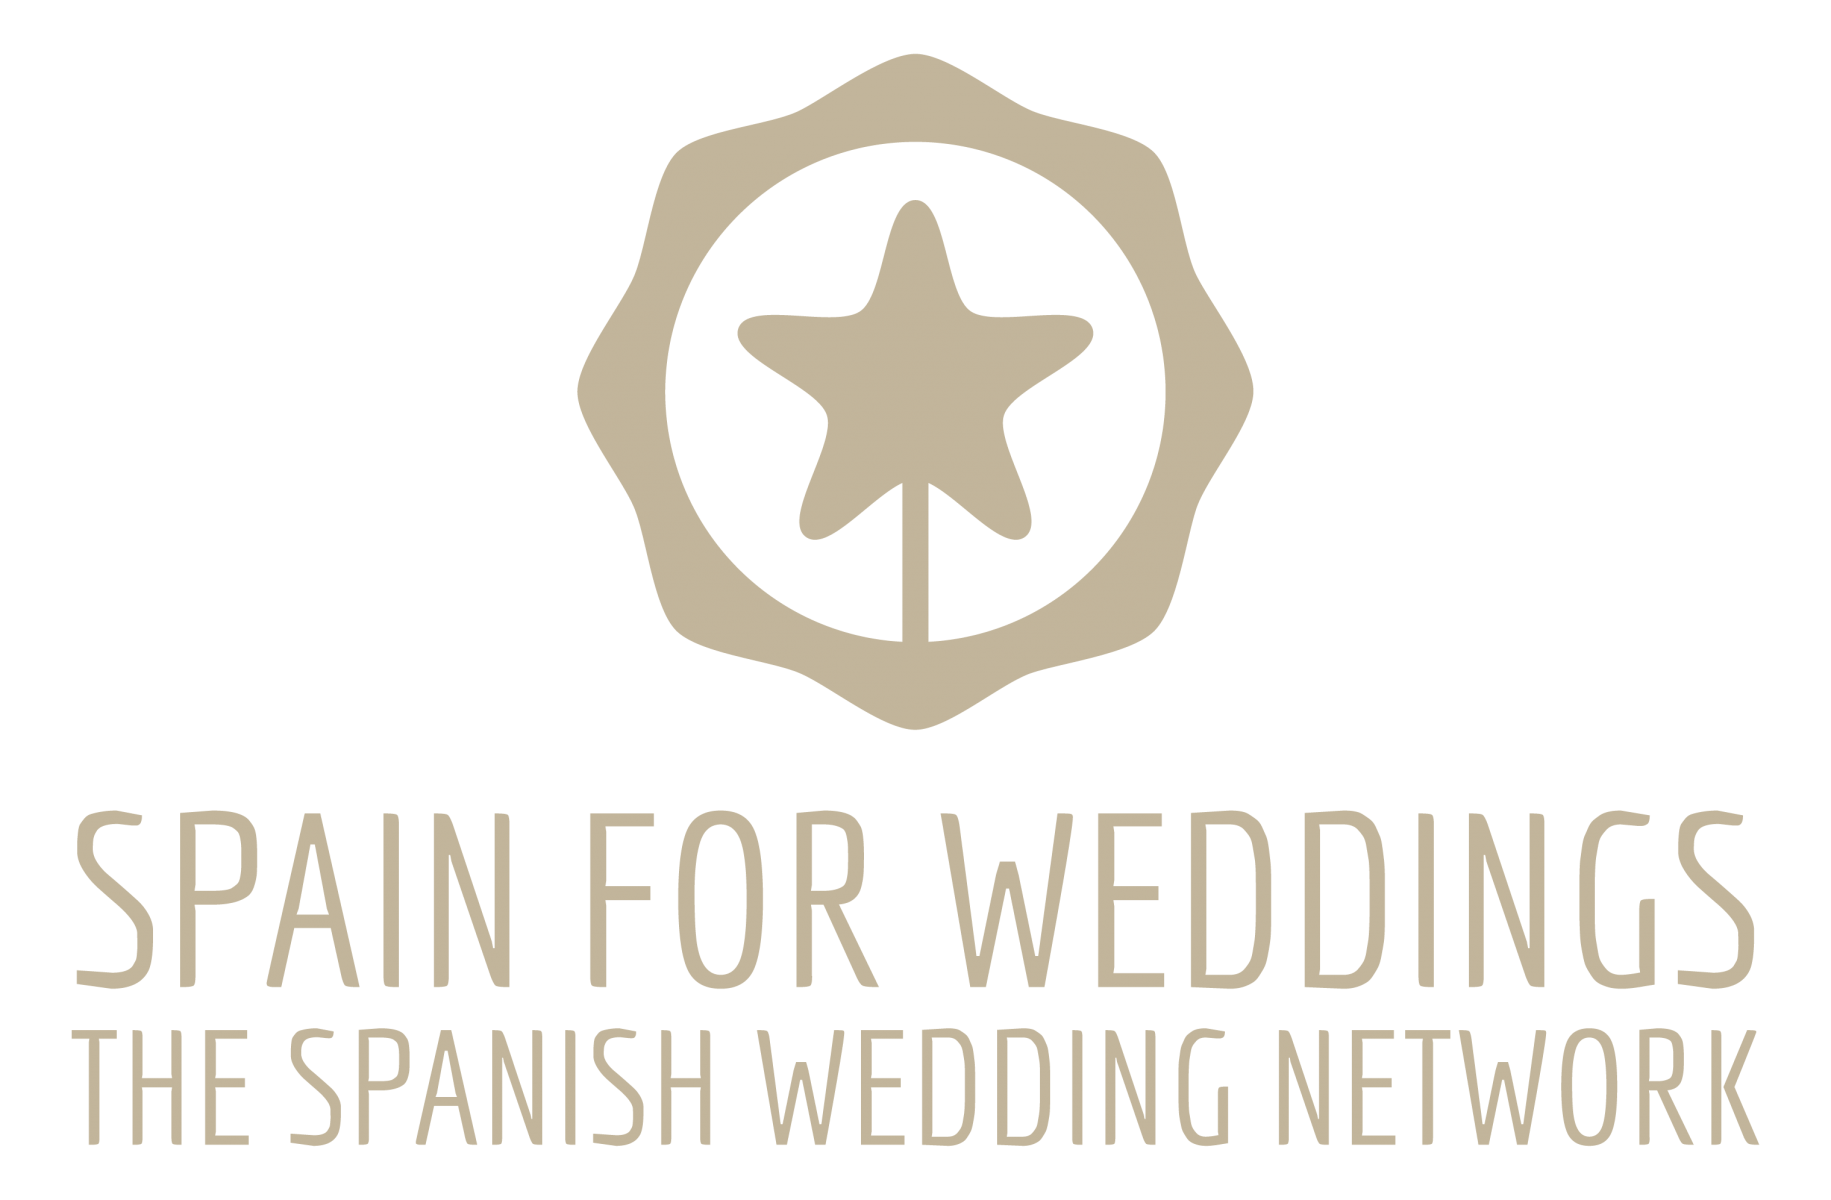 Spain for weddings logo